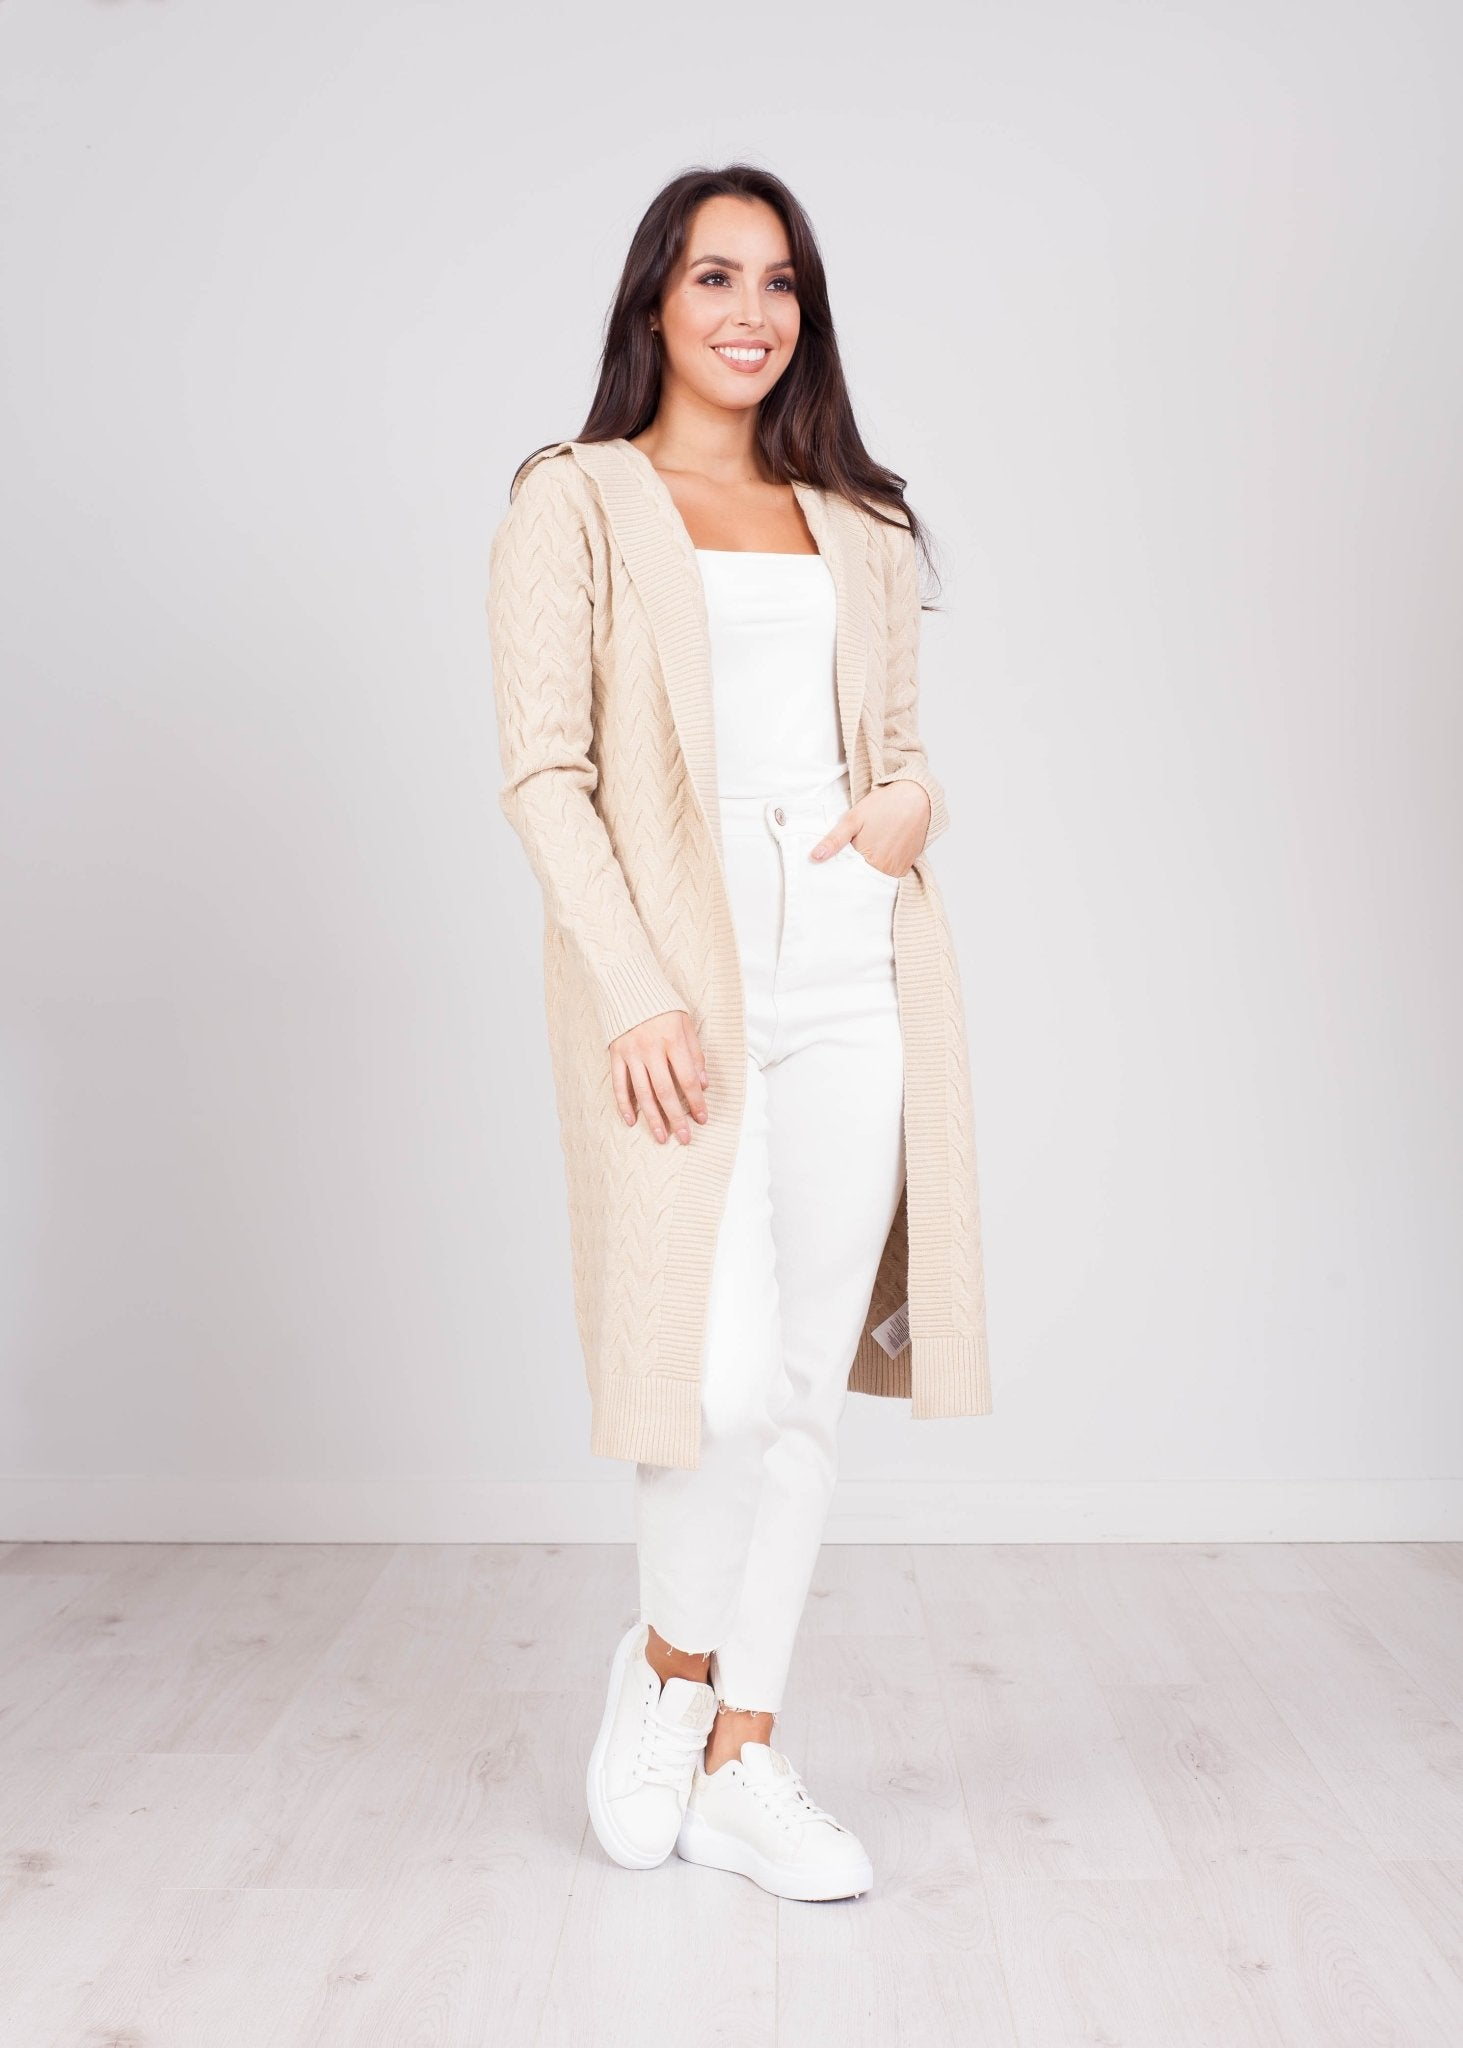 Penny Hooded Cardigan In Stone - The Walk in Wardrobe